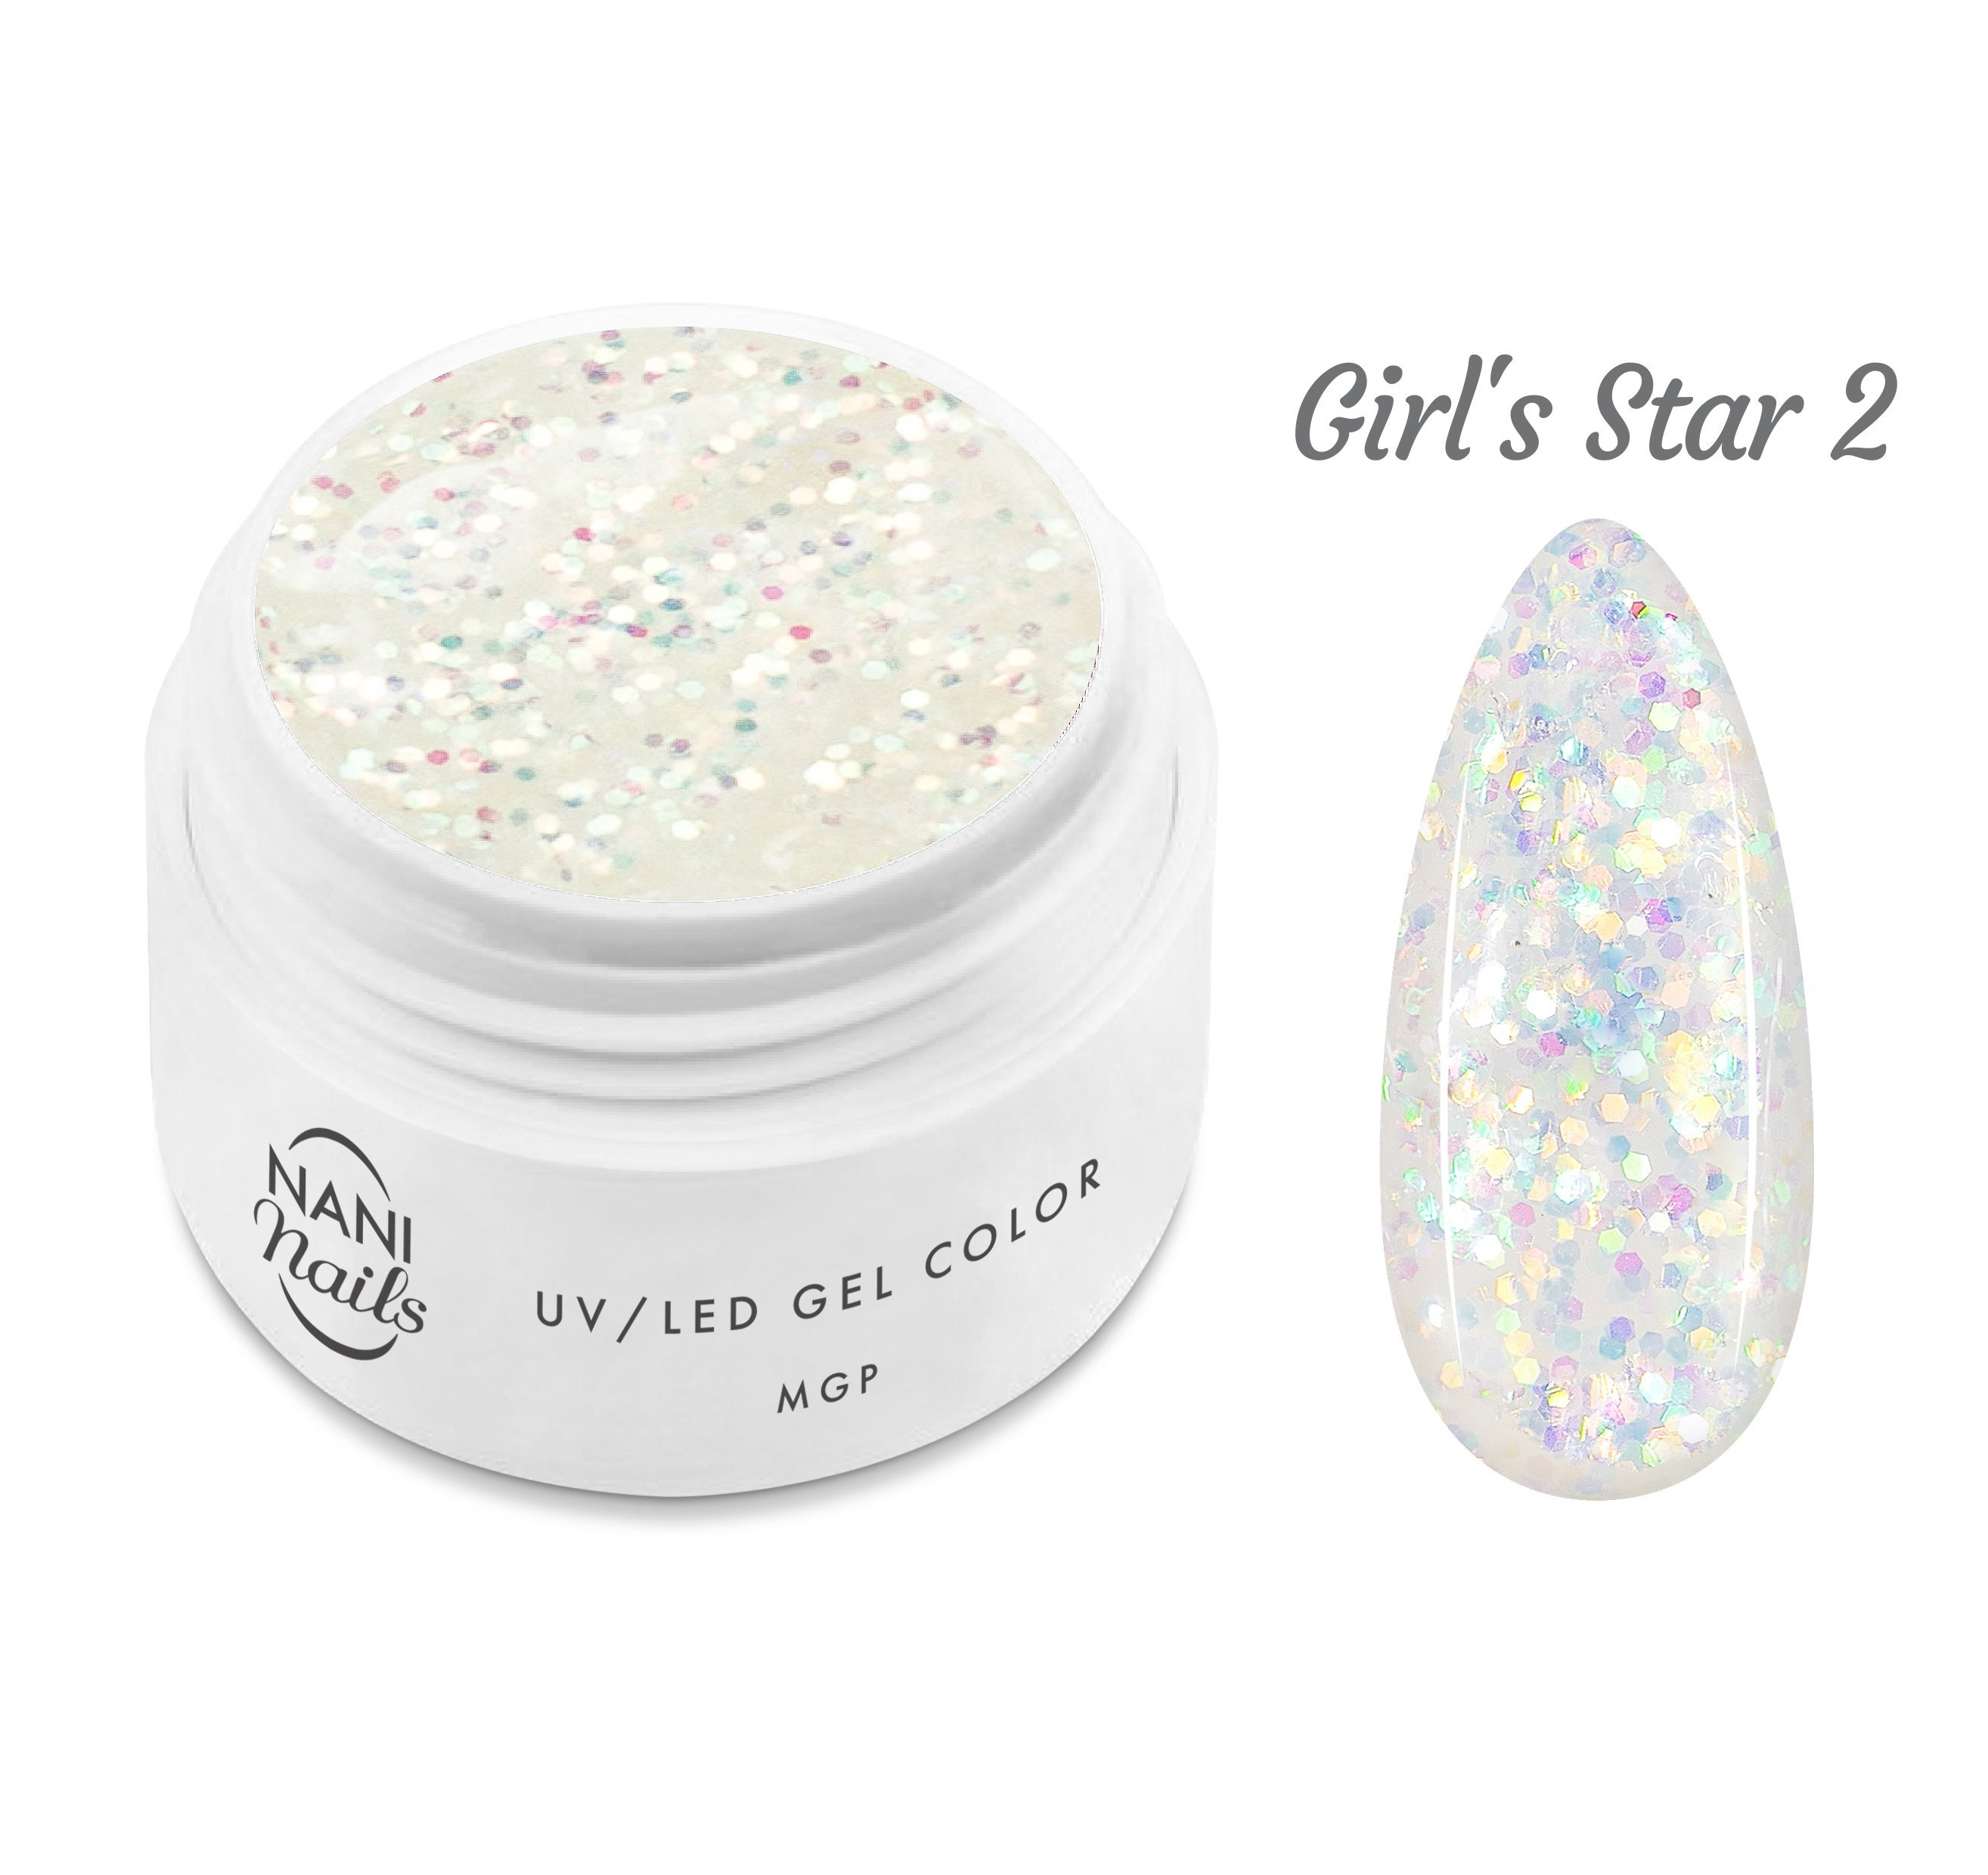 NANI UV gél MGP Line 5 ml - Girl's Star